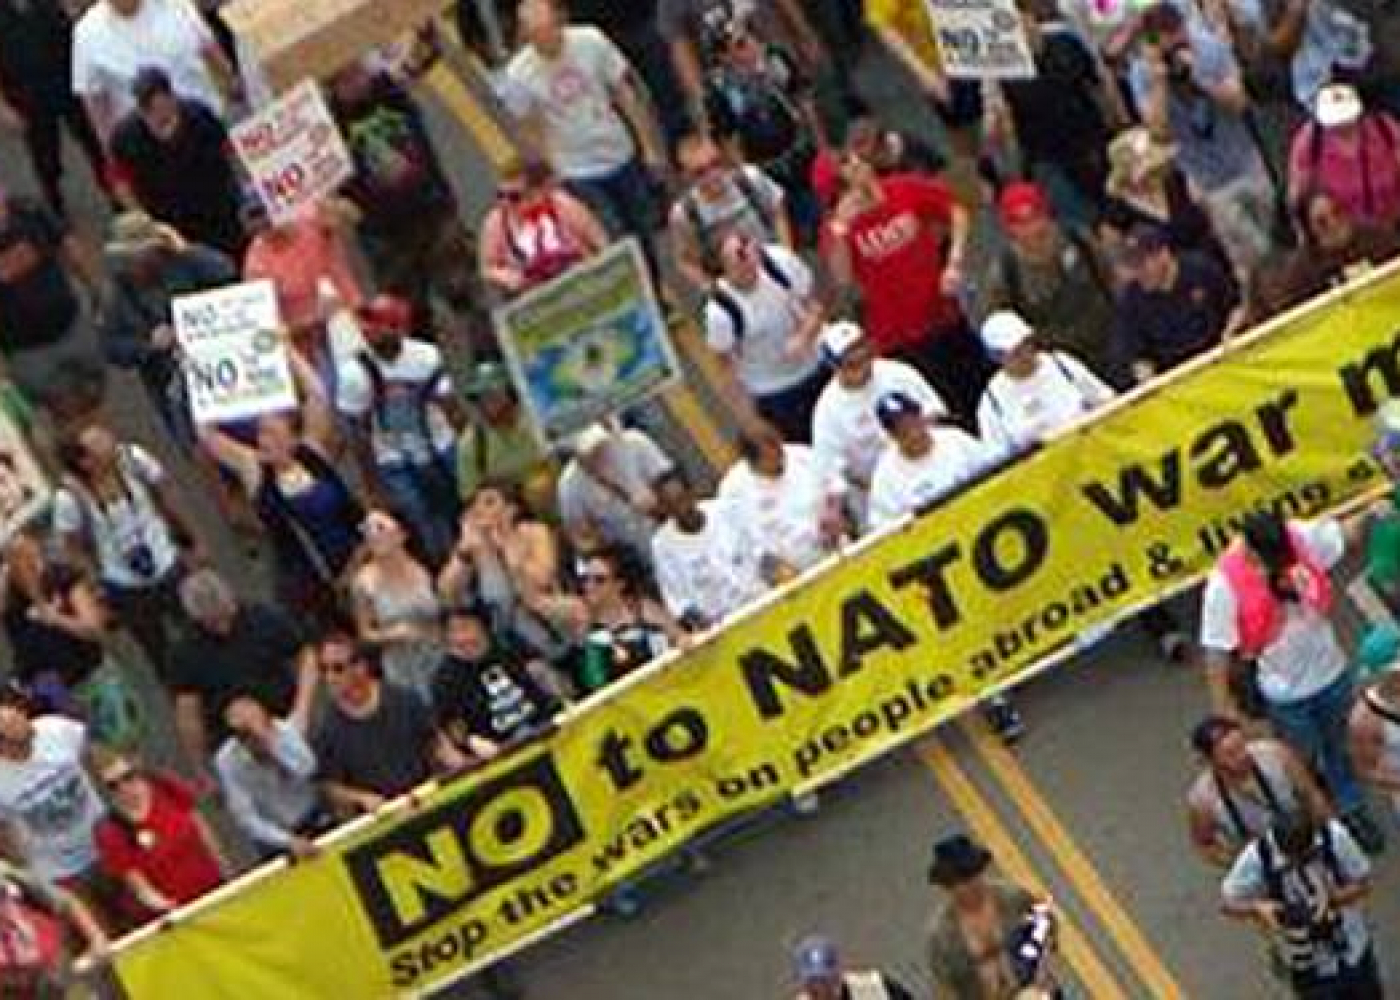 Beyond NATO: Time To Break The Silence, End NATO's Militarism